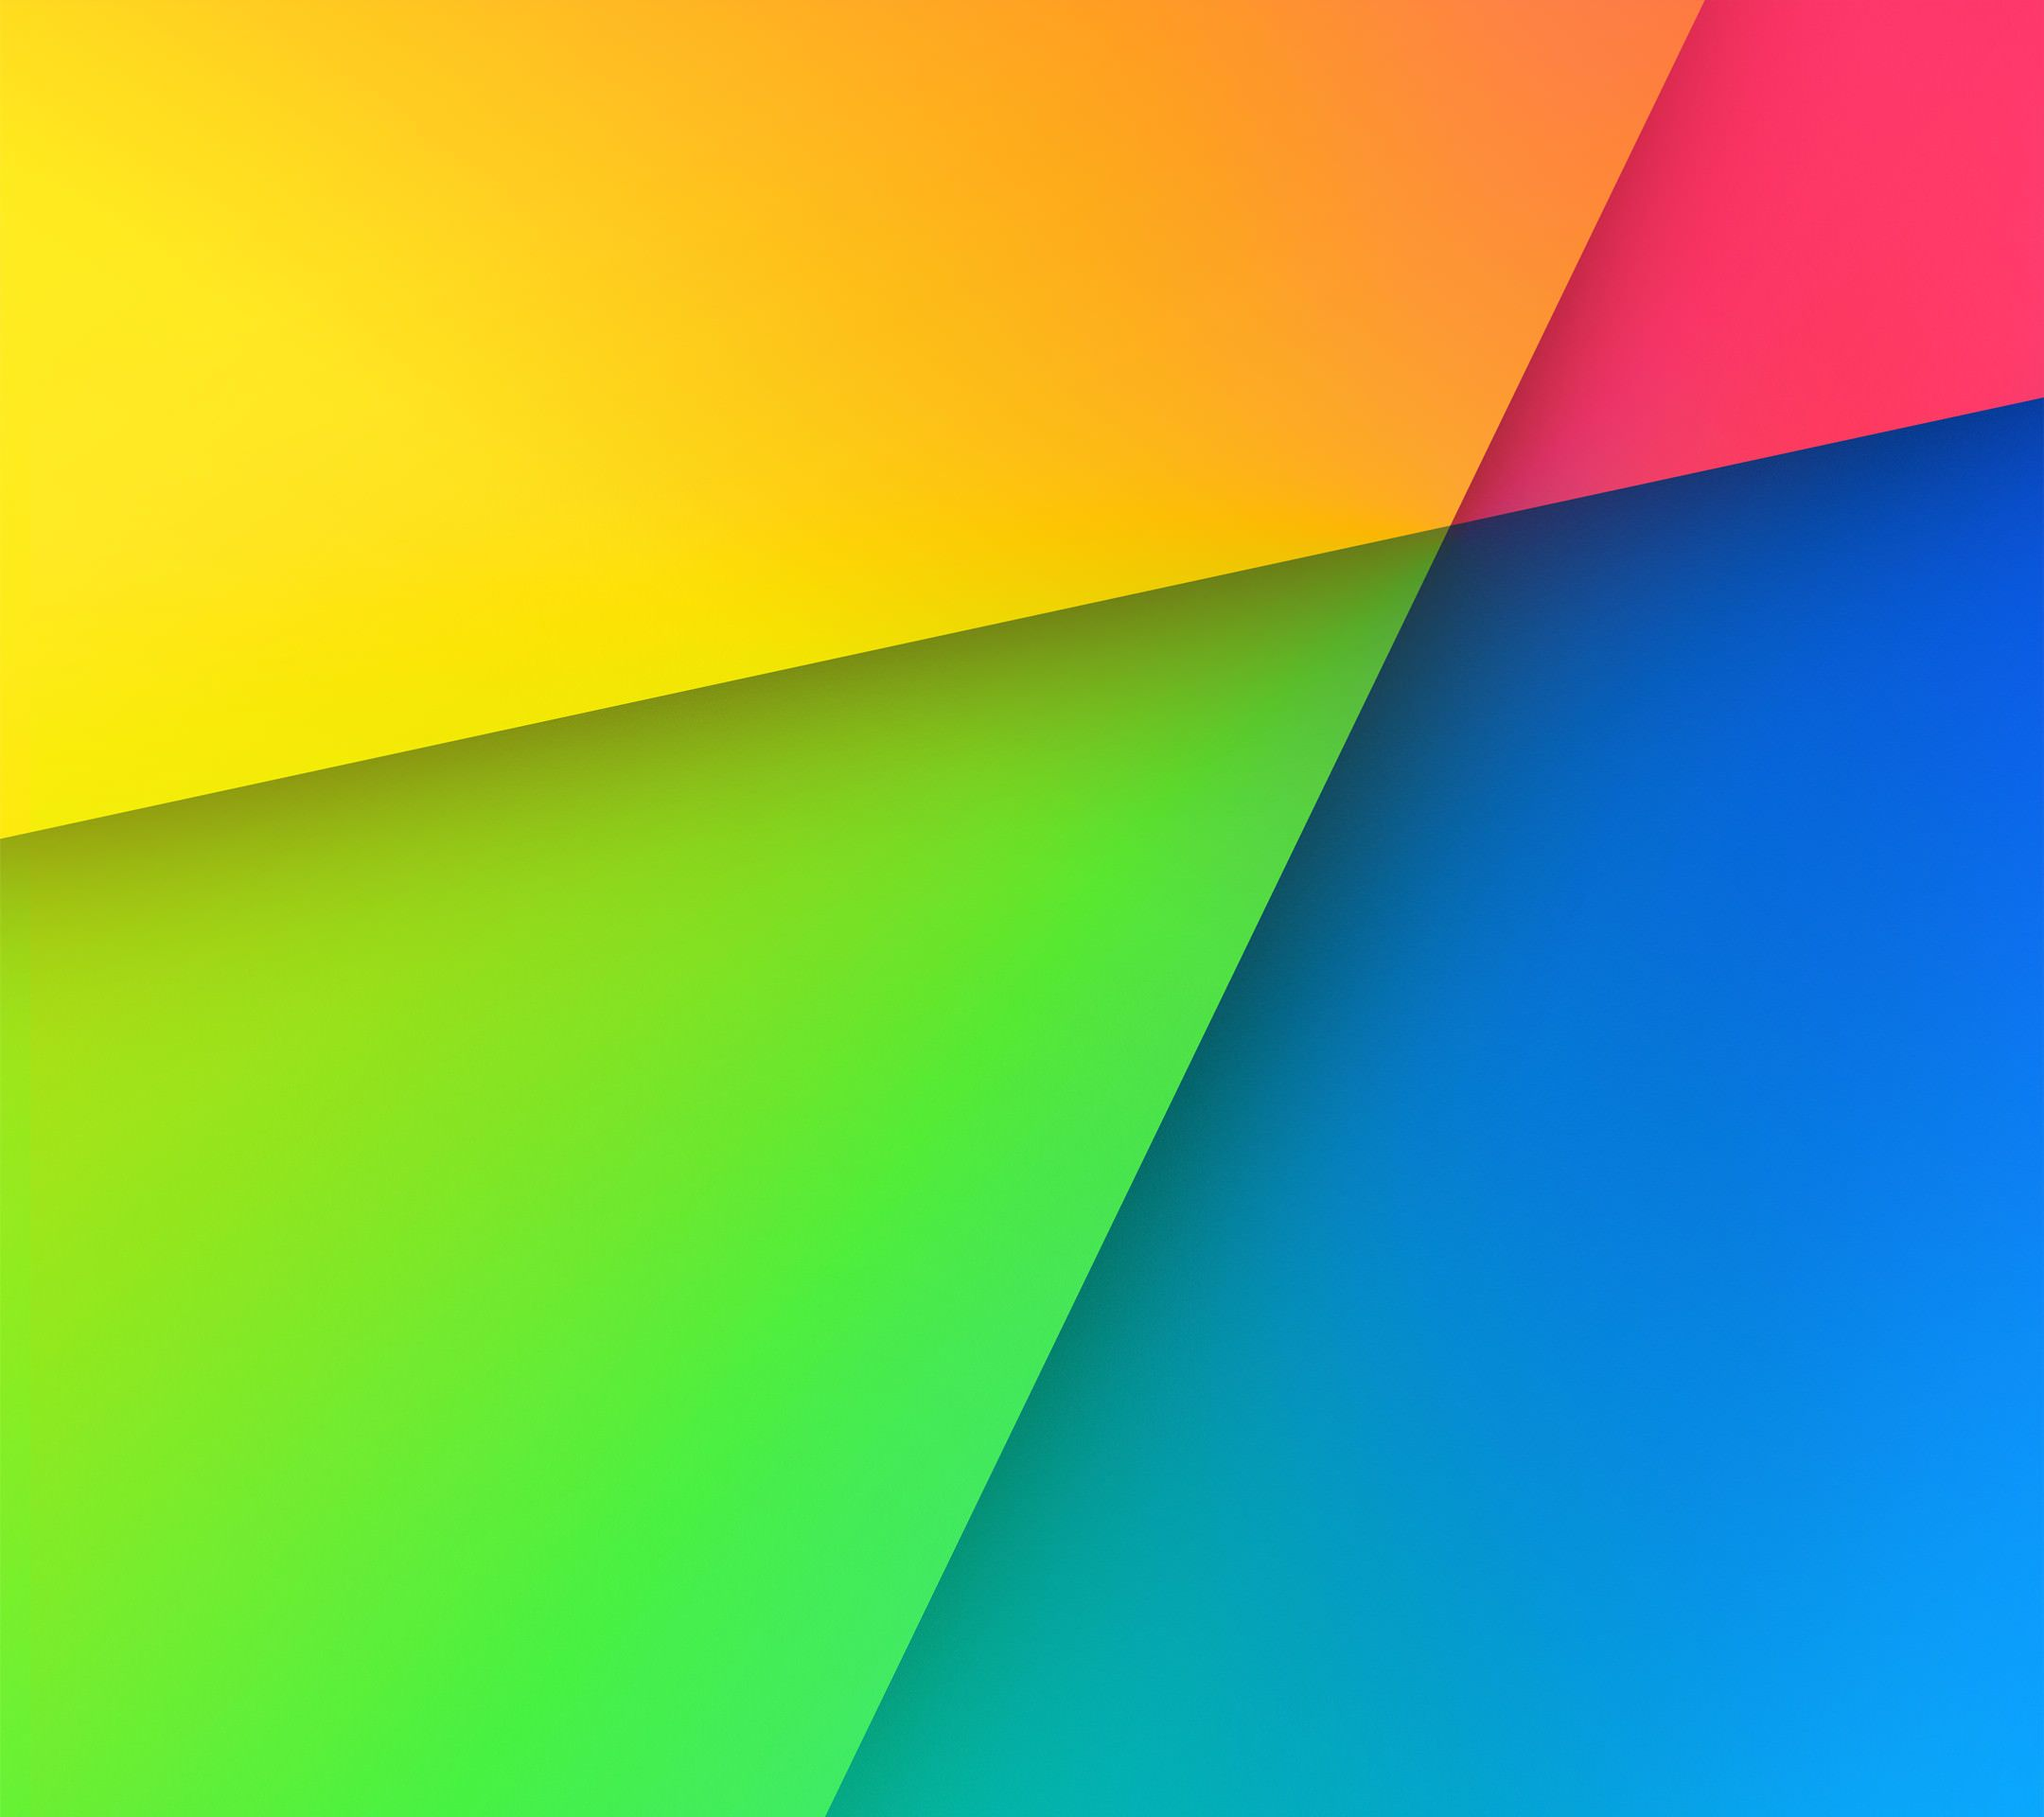 Colorful Red Green And Blue Yellow Wallpaper Sc Smartphone Android Wallpaper Brand Colors Inspiration Stock Wallpaper